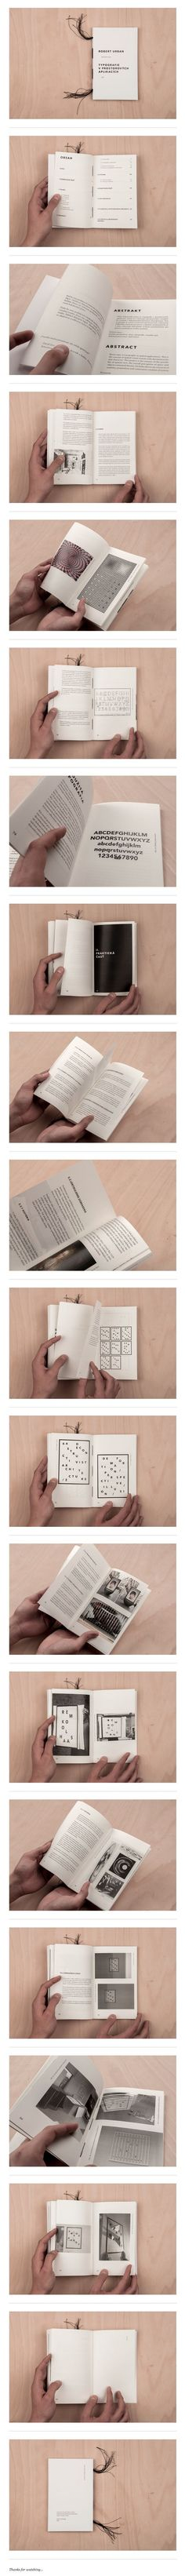 TYPOGRAPHY IN SPATIAL APPLICATIONS \ This book was made as part of my bachelor thesis named: Typography in spatial applications. Complete theoretical part of my thesis. \ Editorial Design, Graphic Design, Typography \ Robert Urban